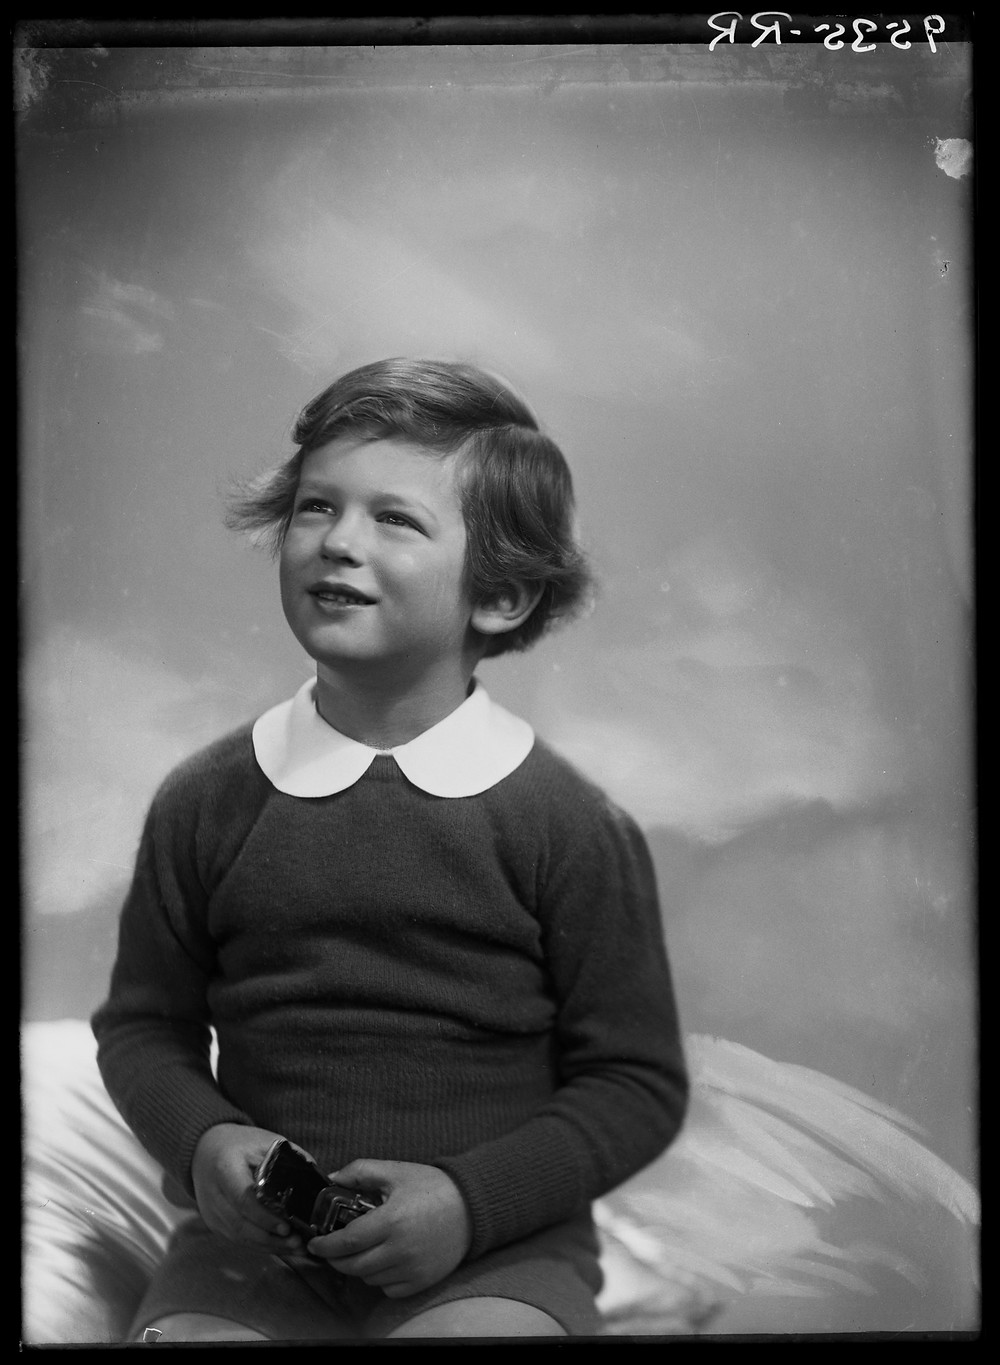 Prince Edward, 1940. Royal Collection Trust/(c) Her Majesty Queen Elizabeth II 2018